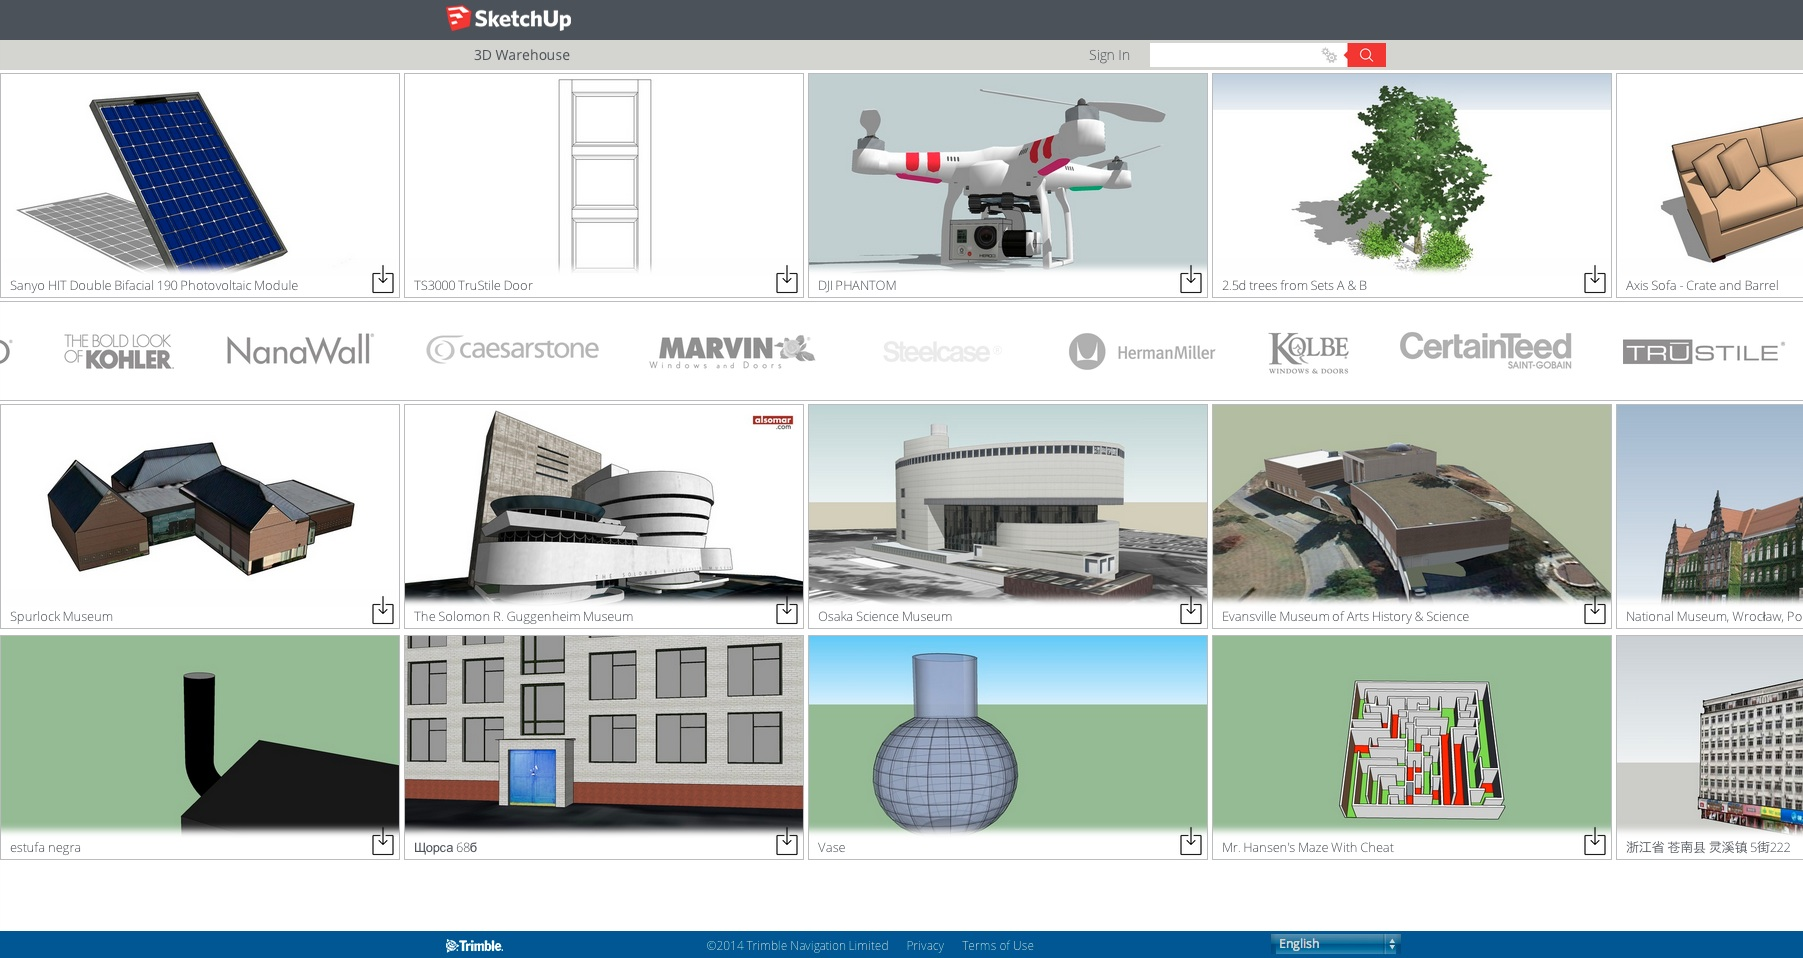 SketchUp 2014 aims to make BIM processes more simple and ...